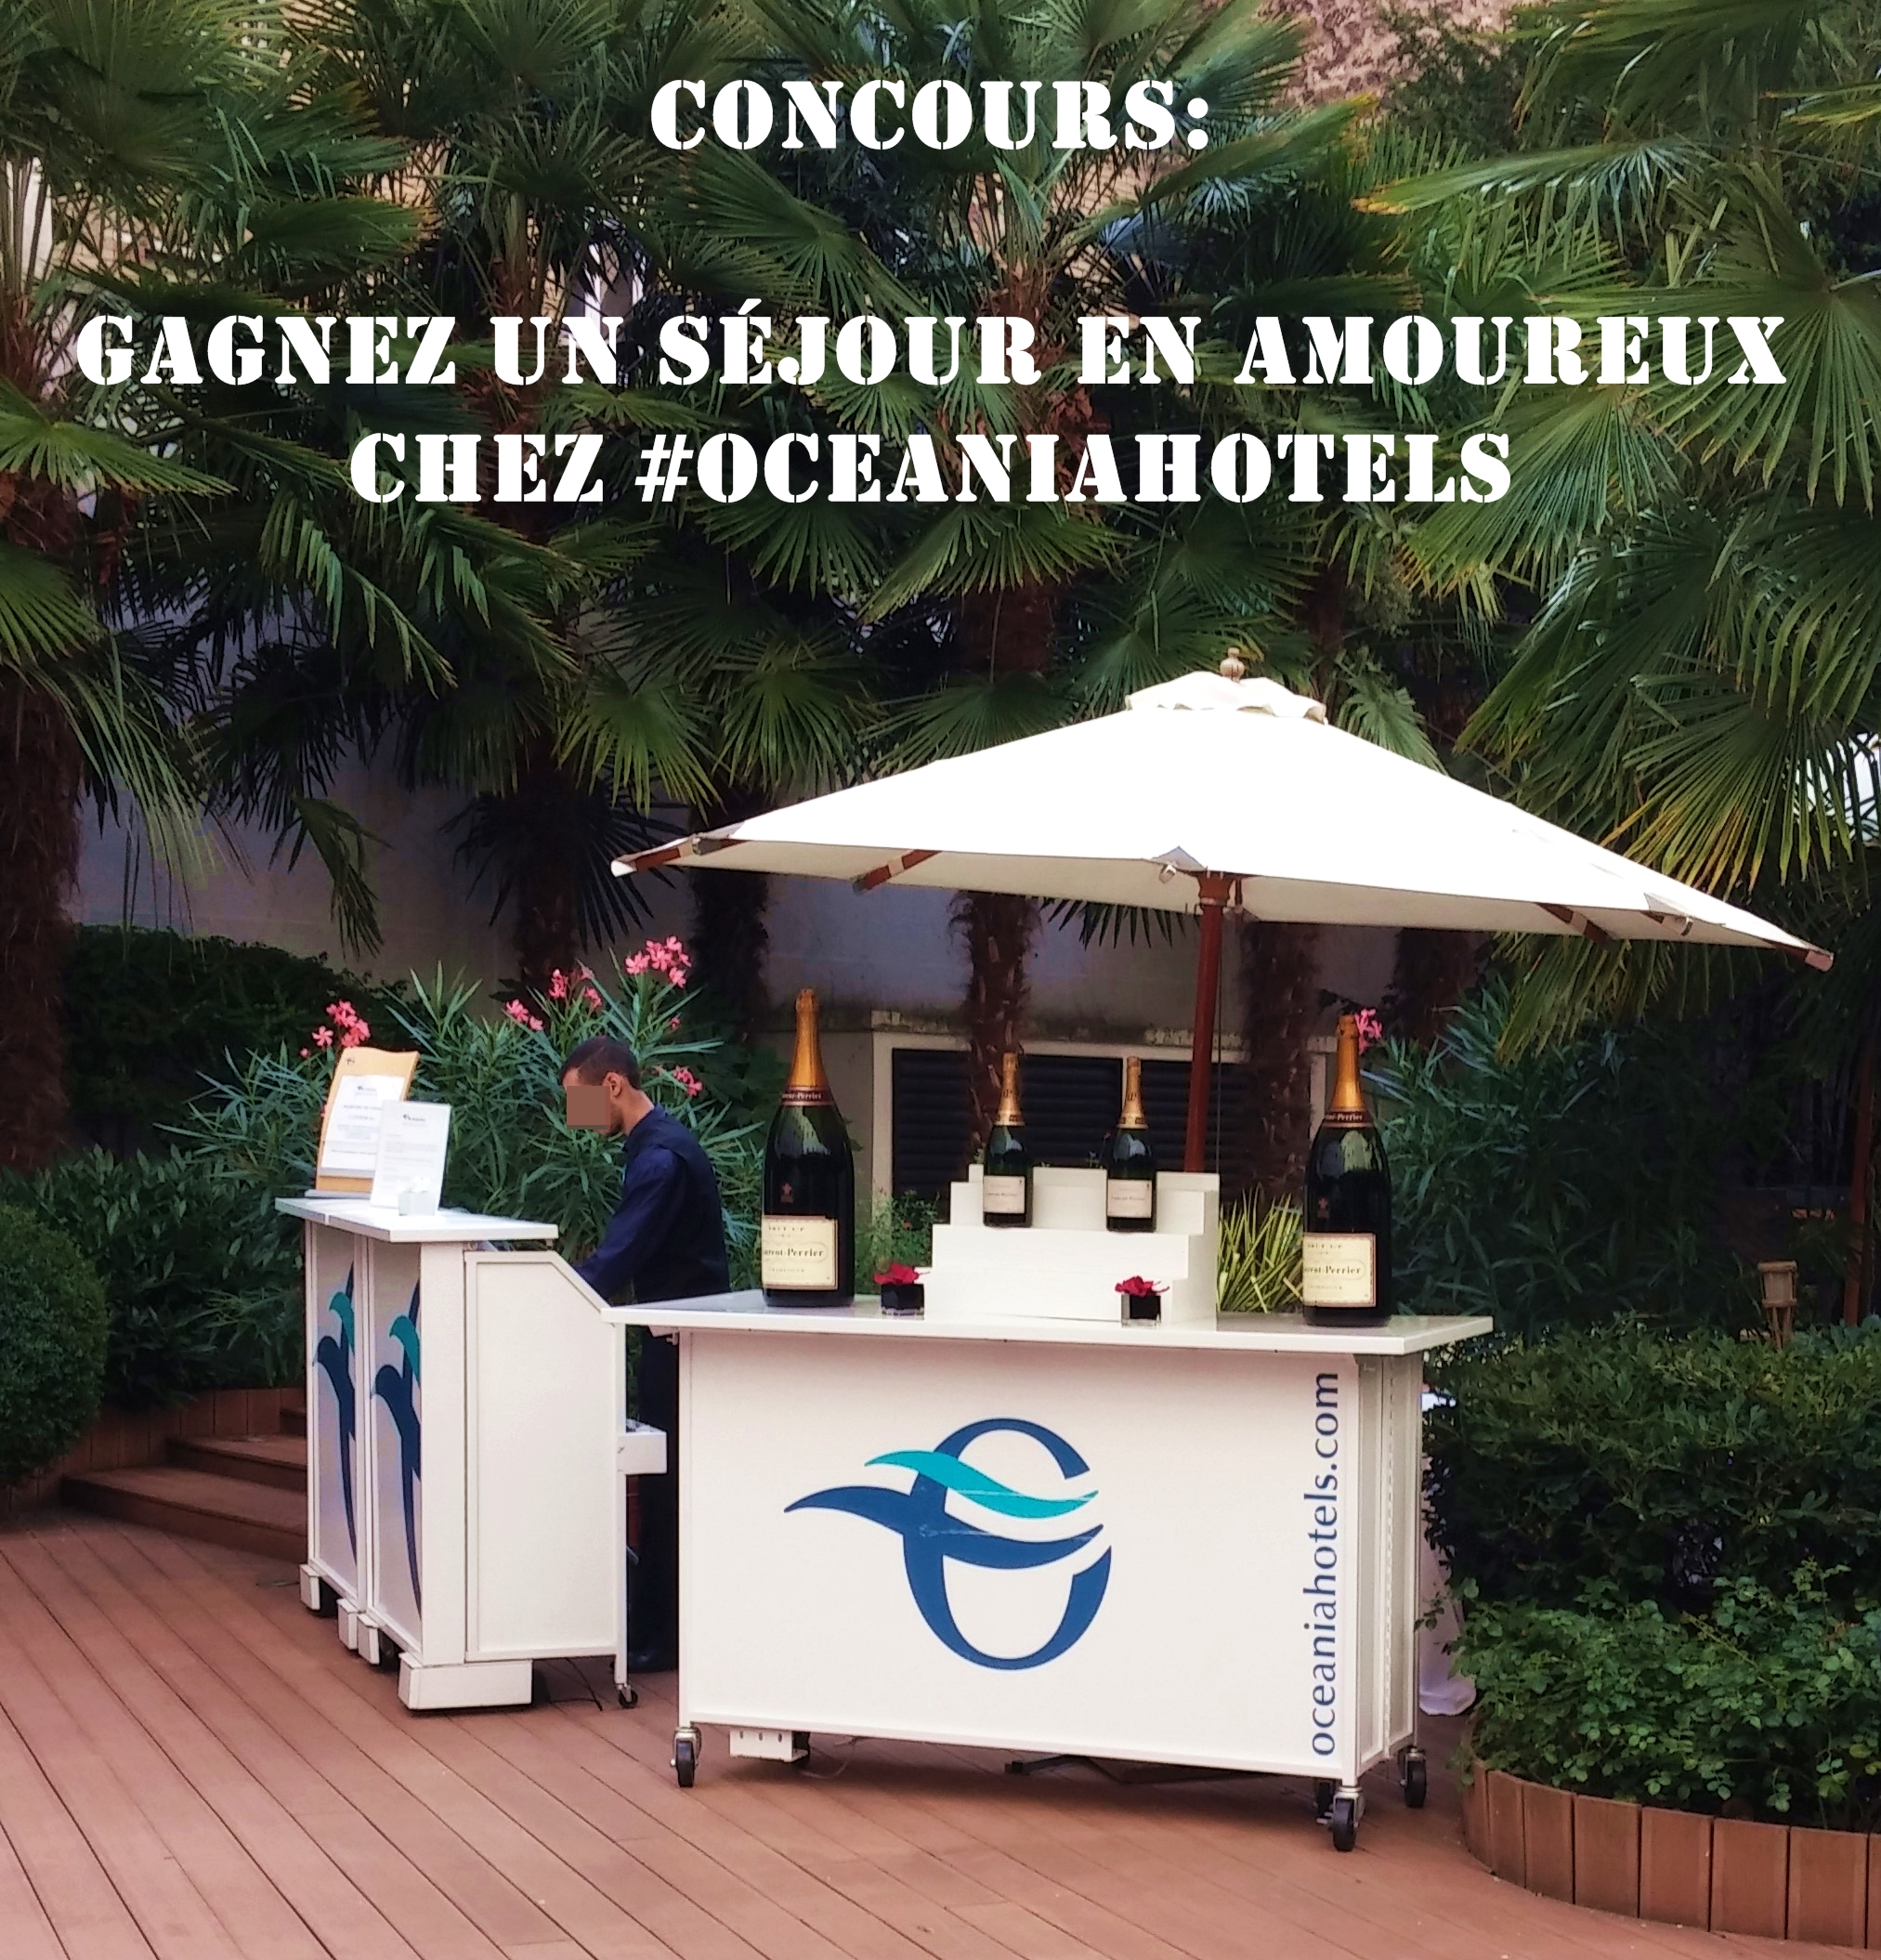 concours #oceaniahotels